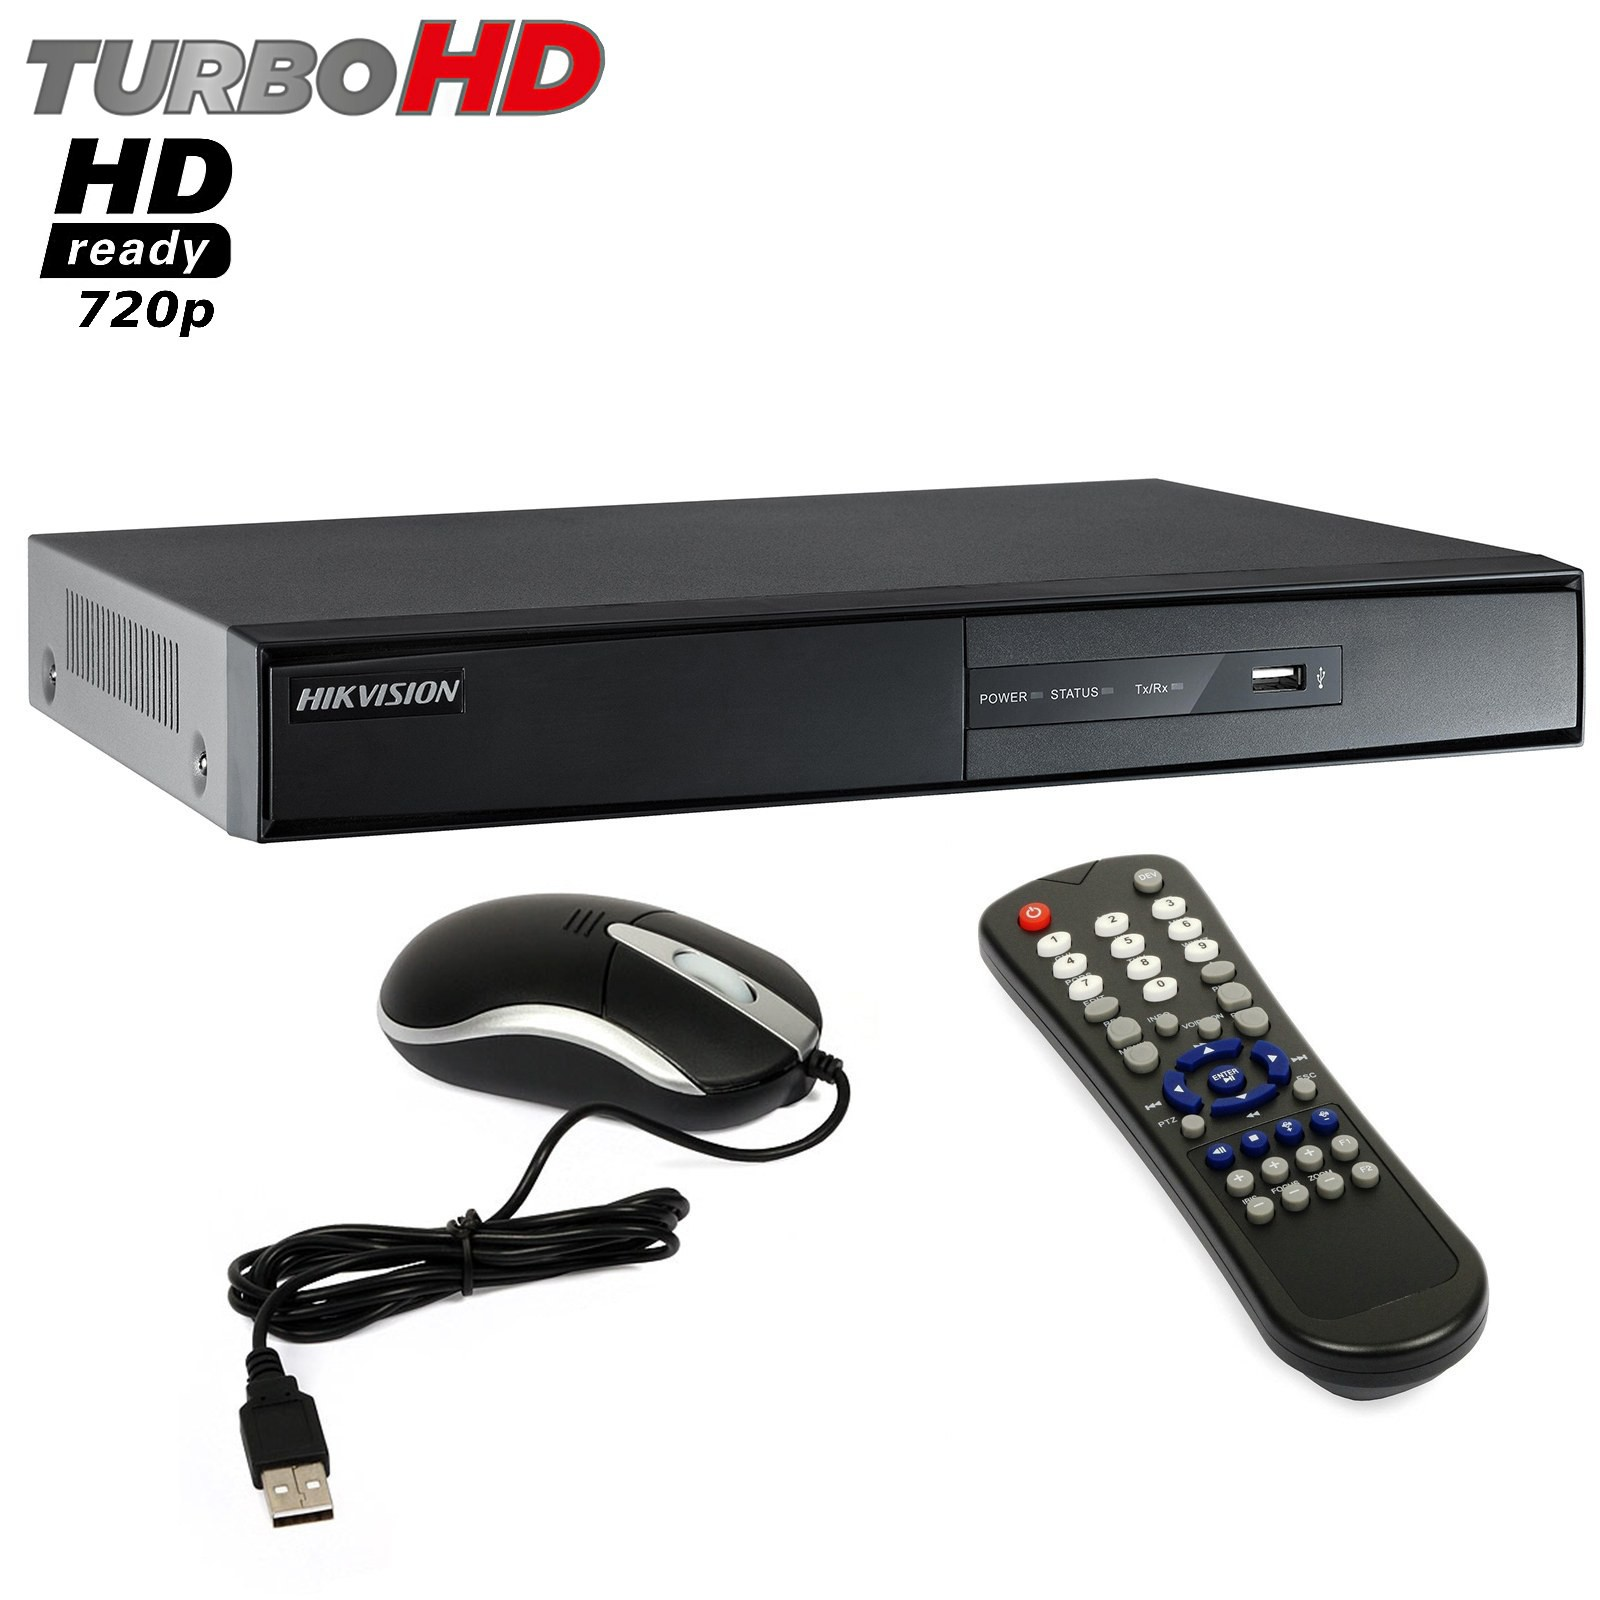 Dvr 8 Canali HIKVISION Turbo HD Ready 720P Video HDMI H264 LAN DS-7208HGHI-SH